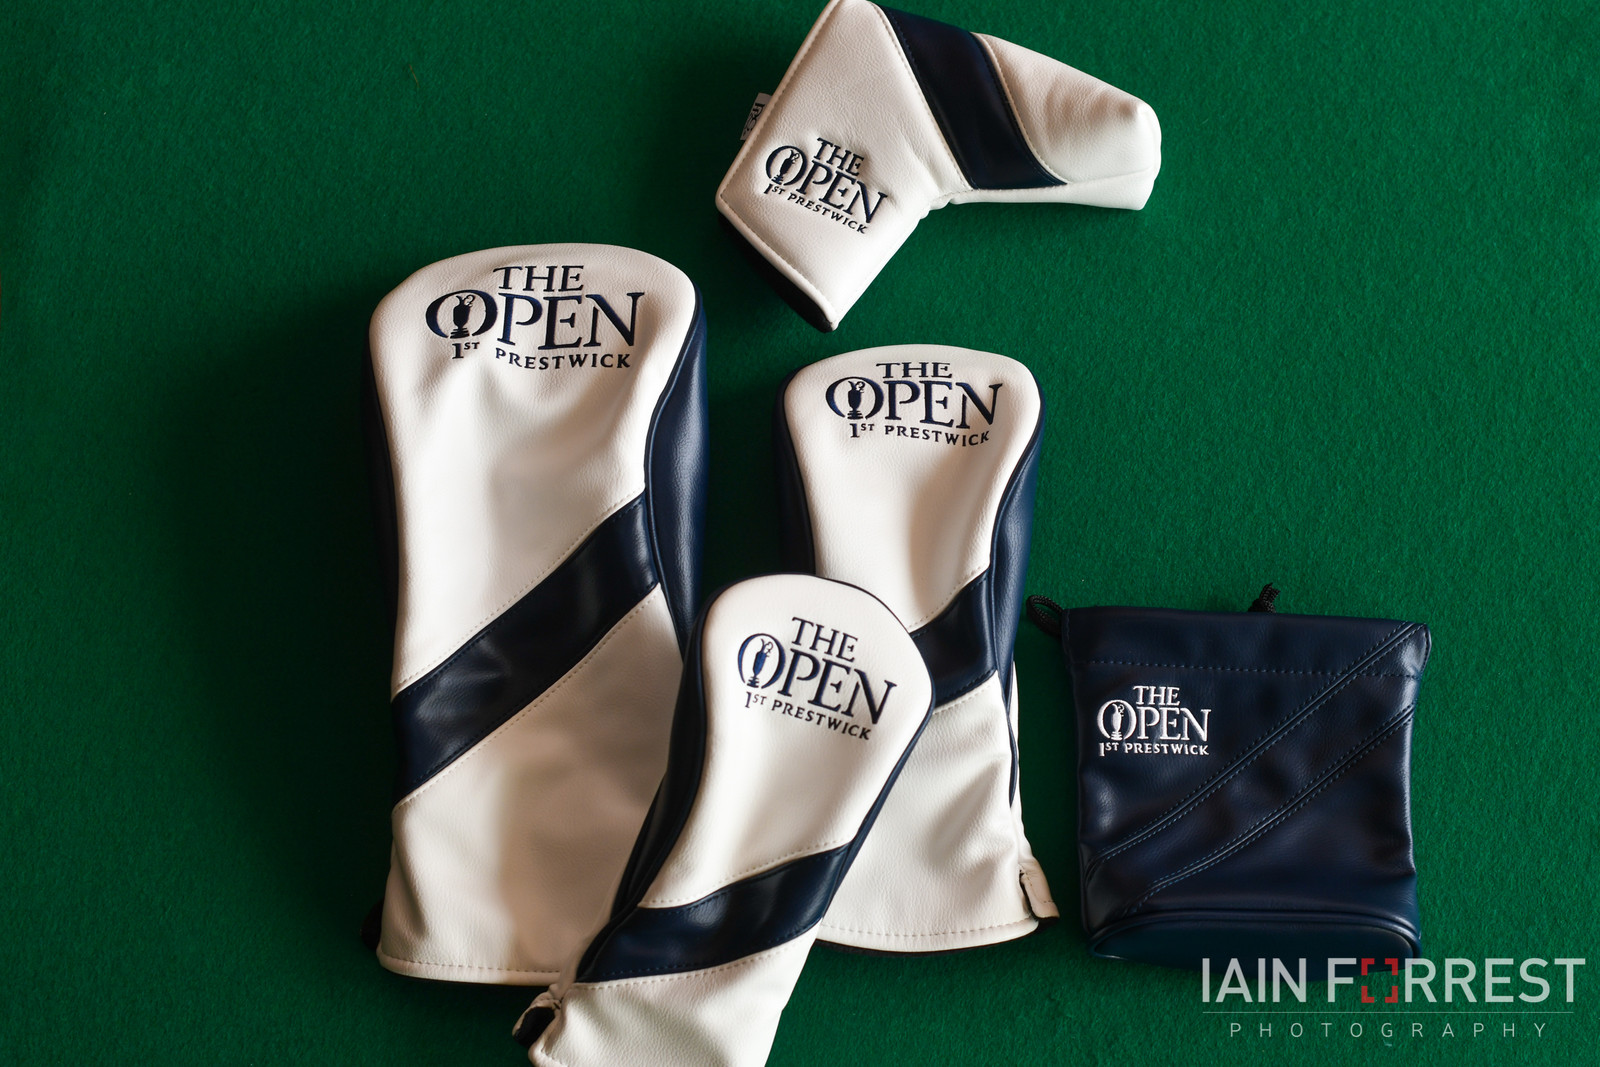 PRG Leatherette Headcover 1st Prestwick - (White/Navy)